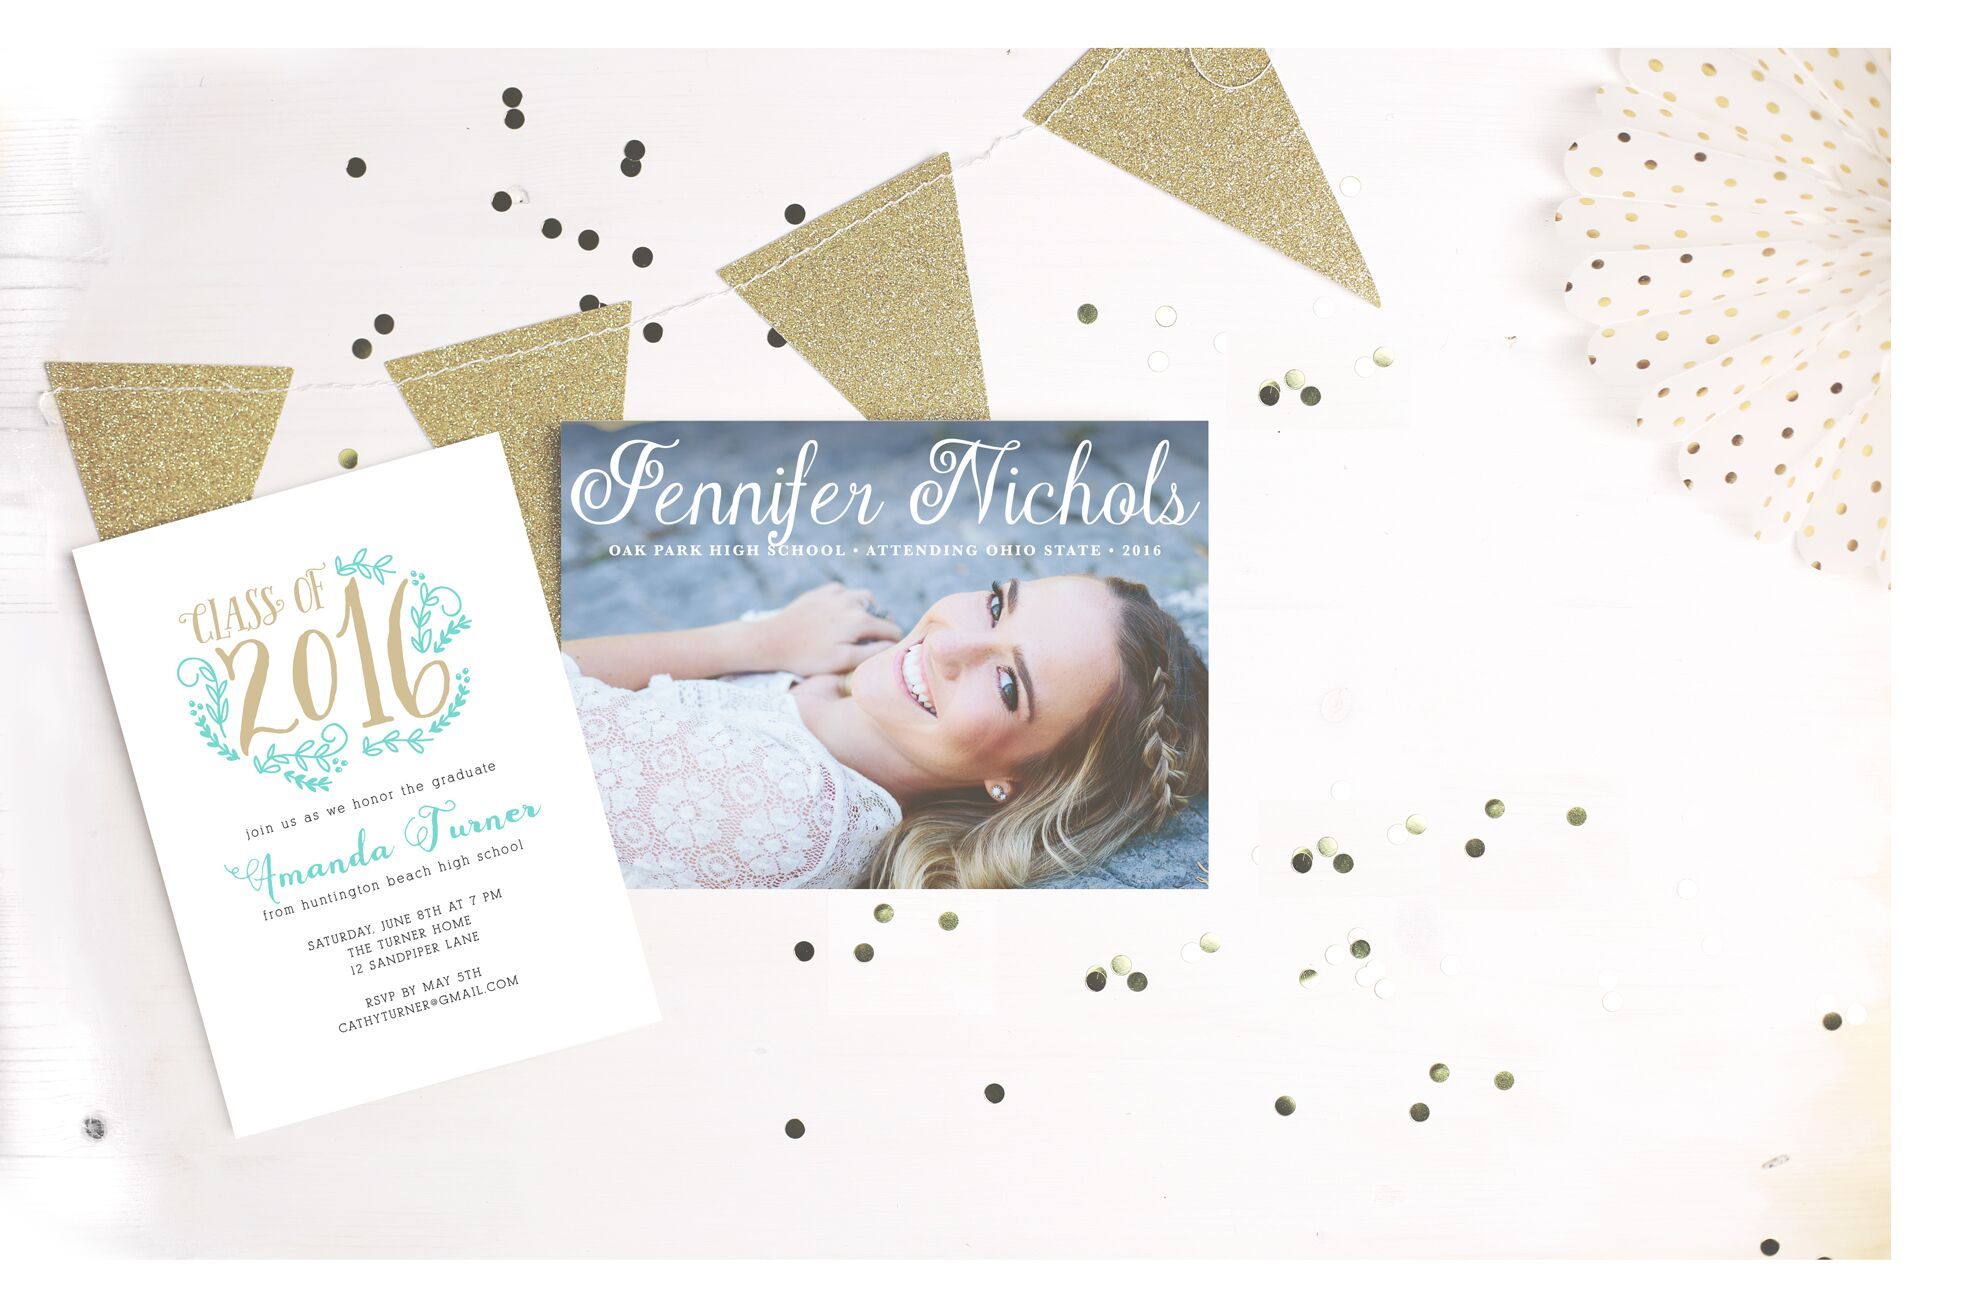 Basic_Invite_Graduation_announcements_and_invitations_20_preview-2